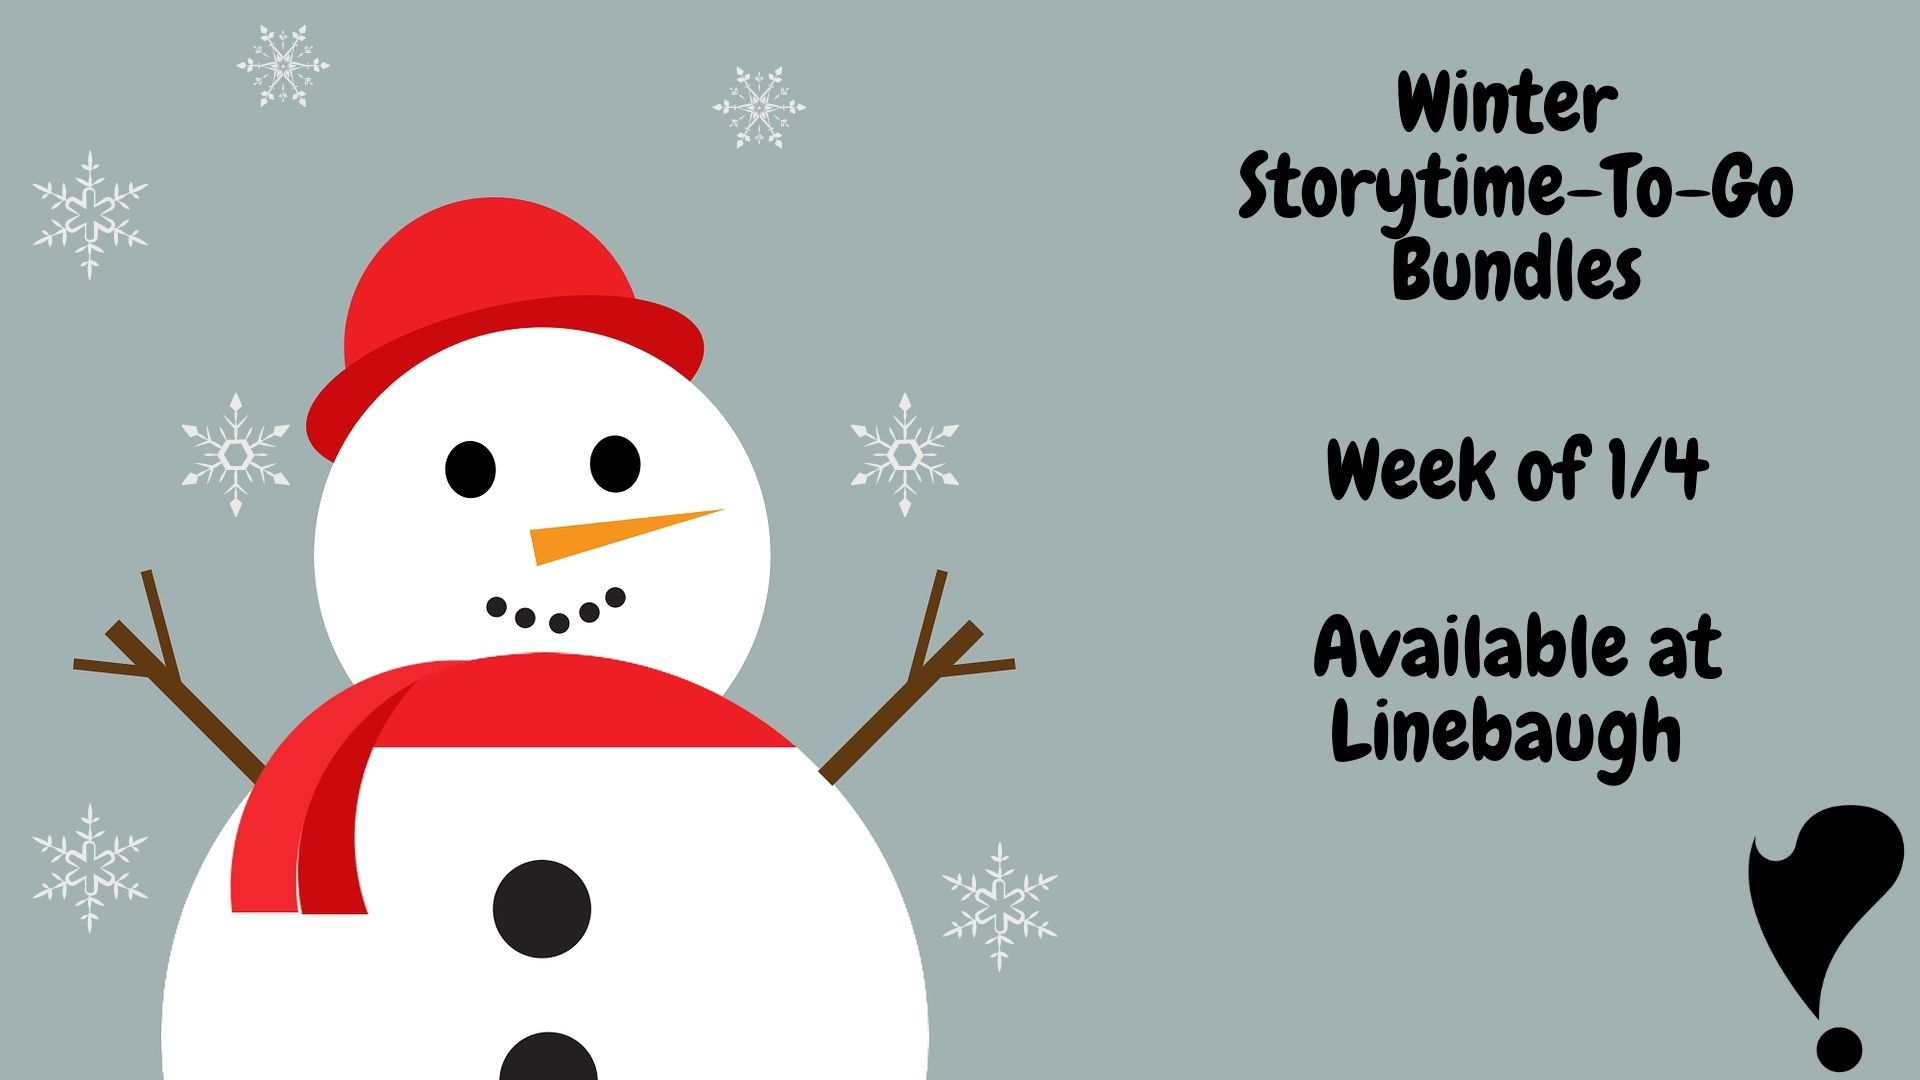 Winter Storytime-To-Go Bundles